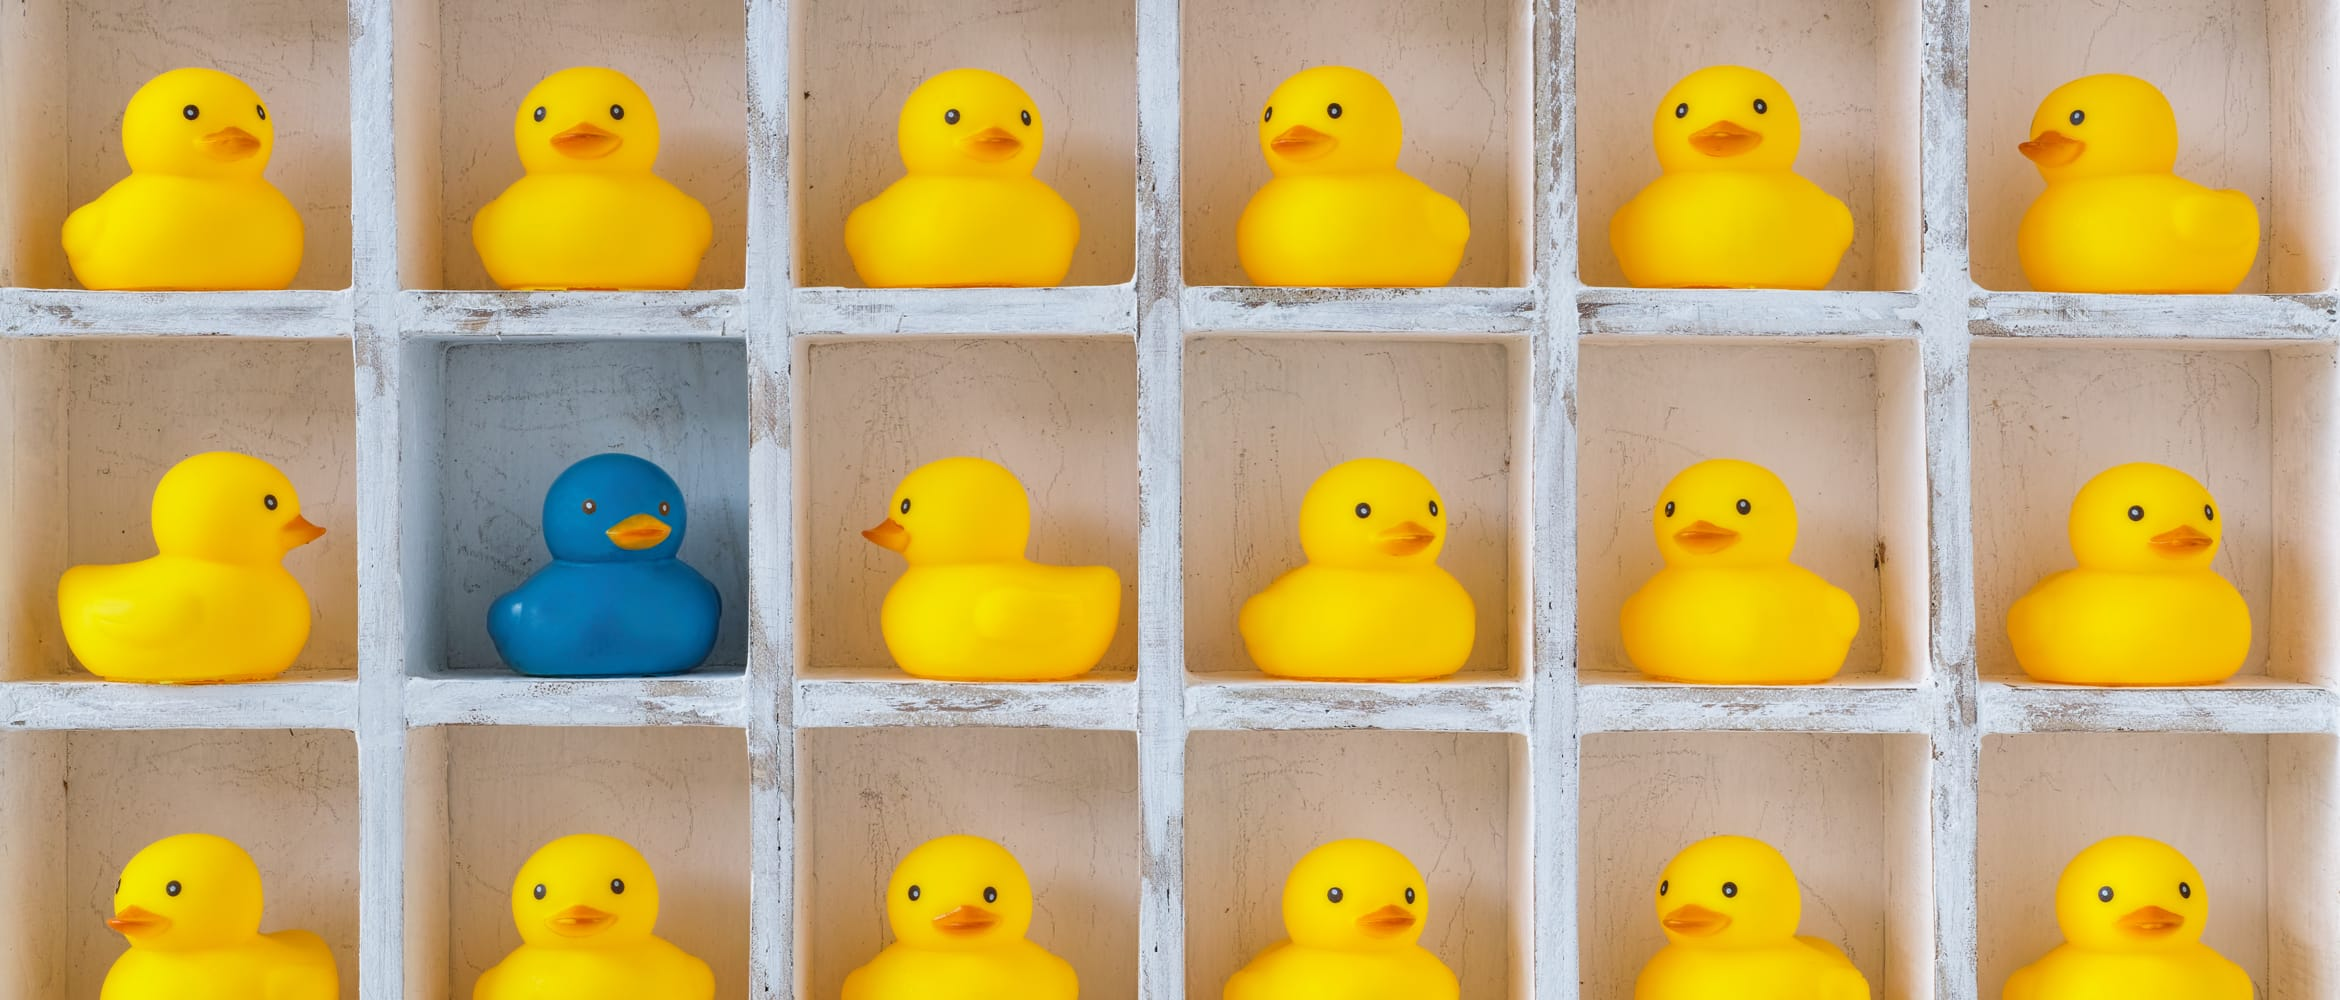 a shelf with multiple sections containing many yellow rubber ducks, and one blue rubber duck